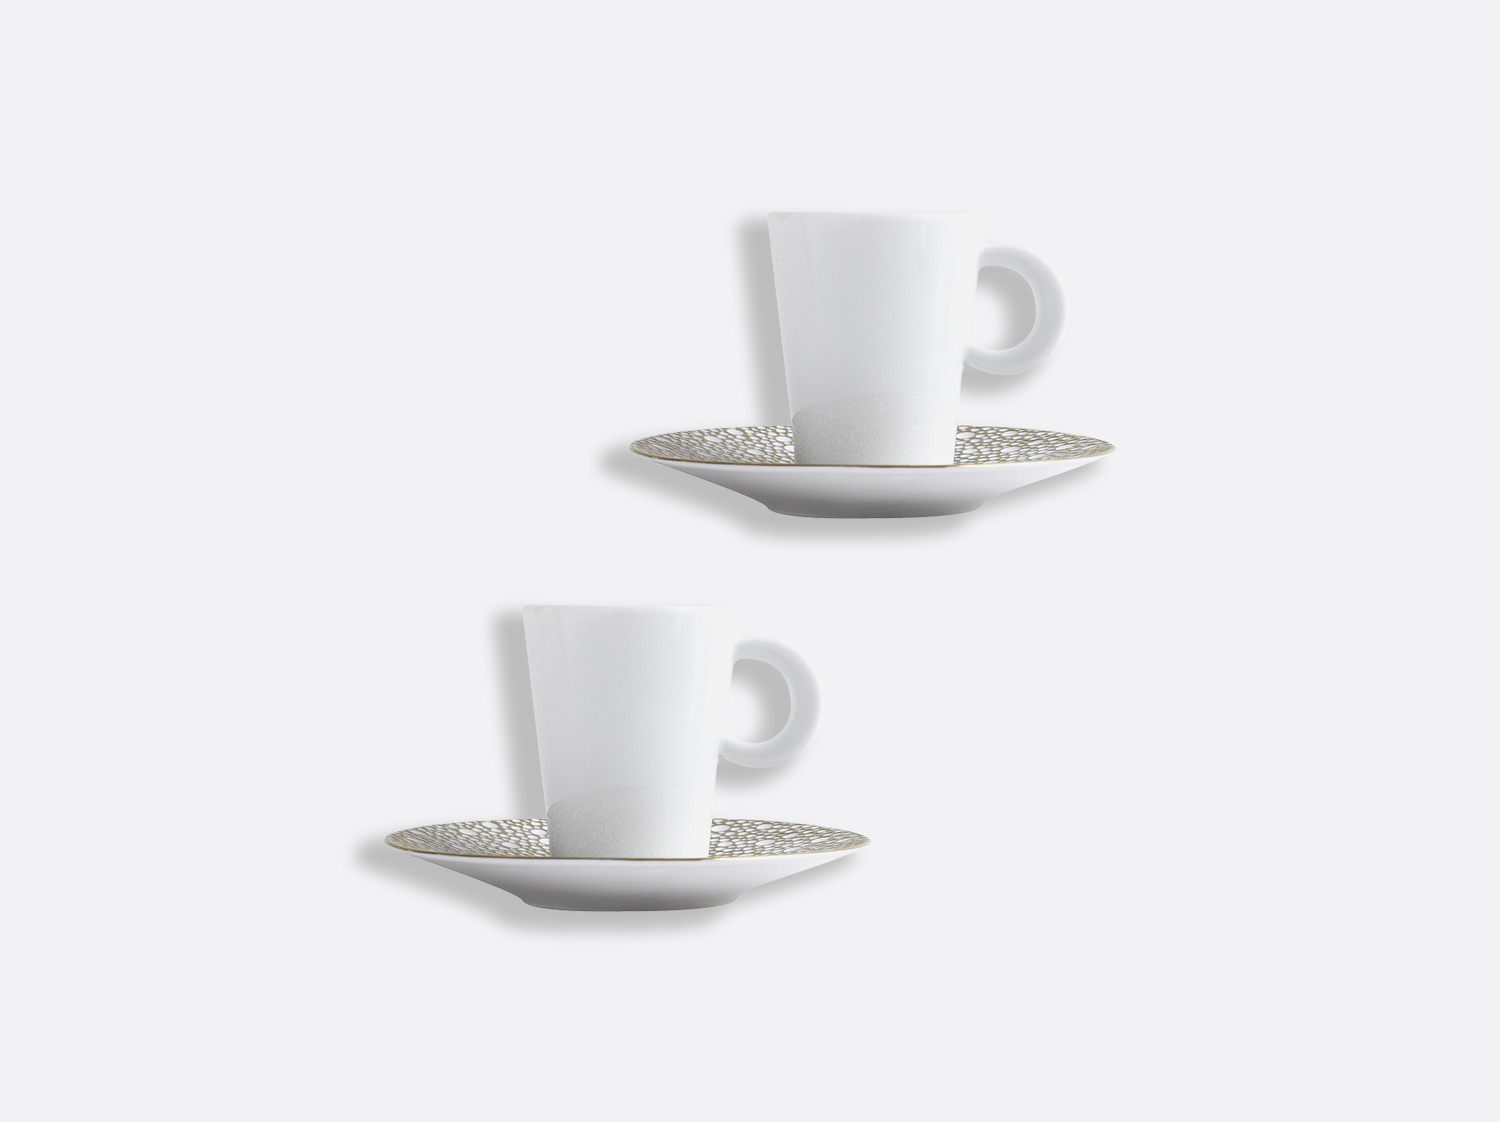 Coffret de tasses & soucoupes café 6 cl - Coffret de 2 en porcelaine de la collection Ecume Mordoré Bernardaud